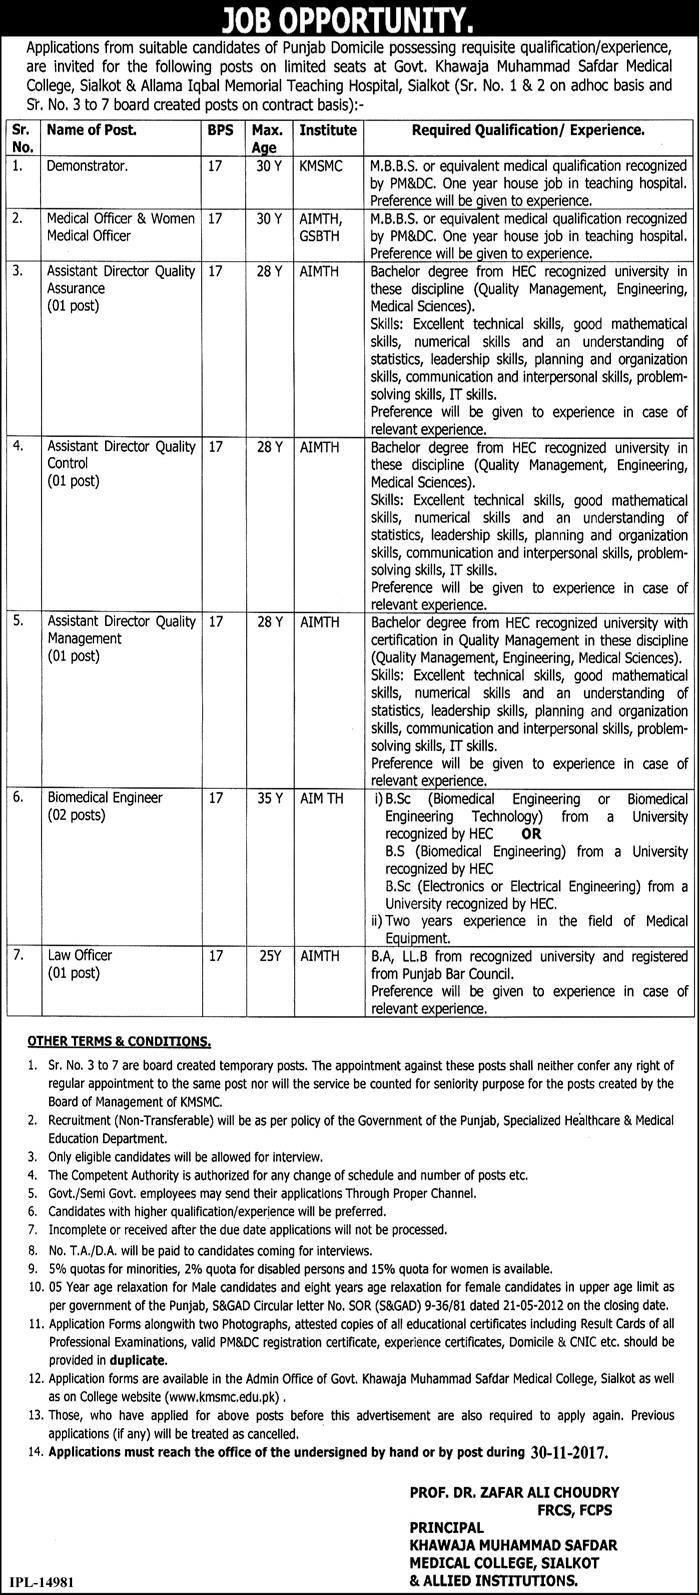 Khawaja Muhammad Safdar Medical College Jobs 2017 In Sialkot For Medical Officers And Assistant Directors http://www.jobsfanda.com/khawaja-muhammad-safdar-medical-college-jobs-2017-sialkot-medical-officers-assistant-directors/